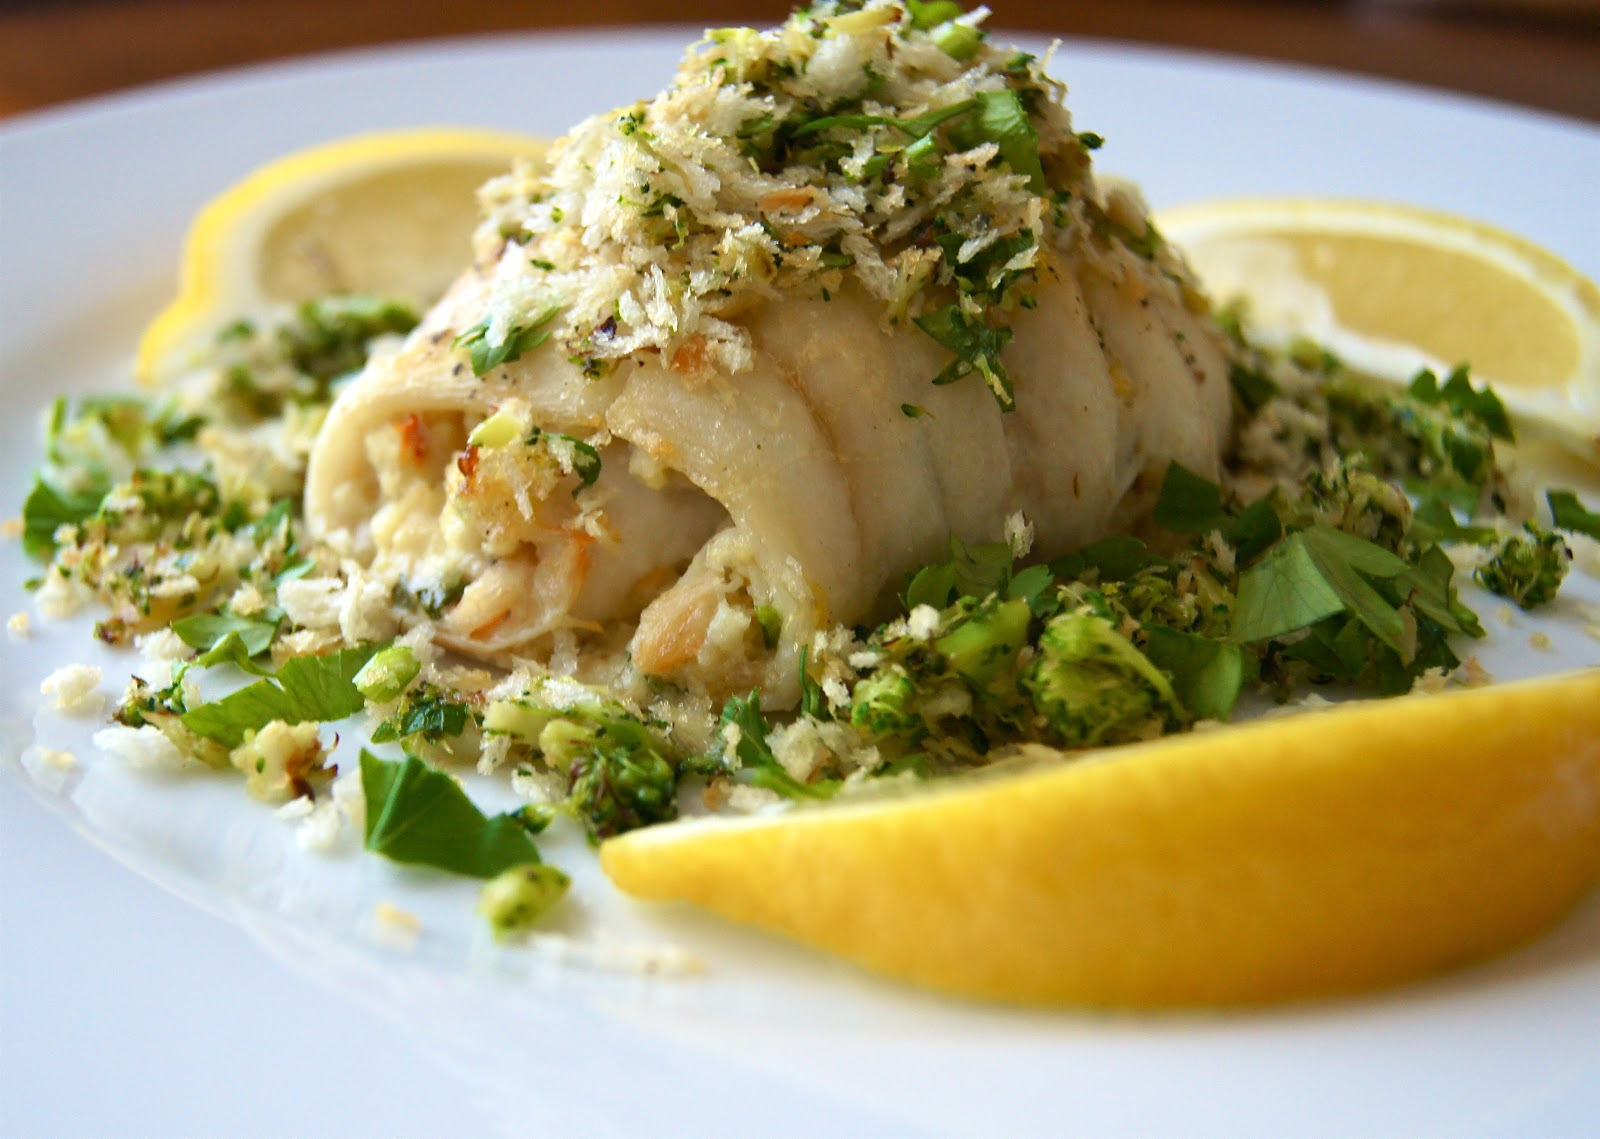 Find this recipe here: Crab-Meat-Stuffed Sole with Broccoli Topping .